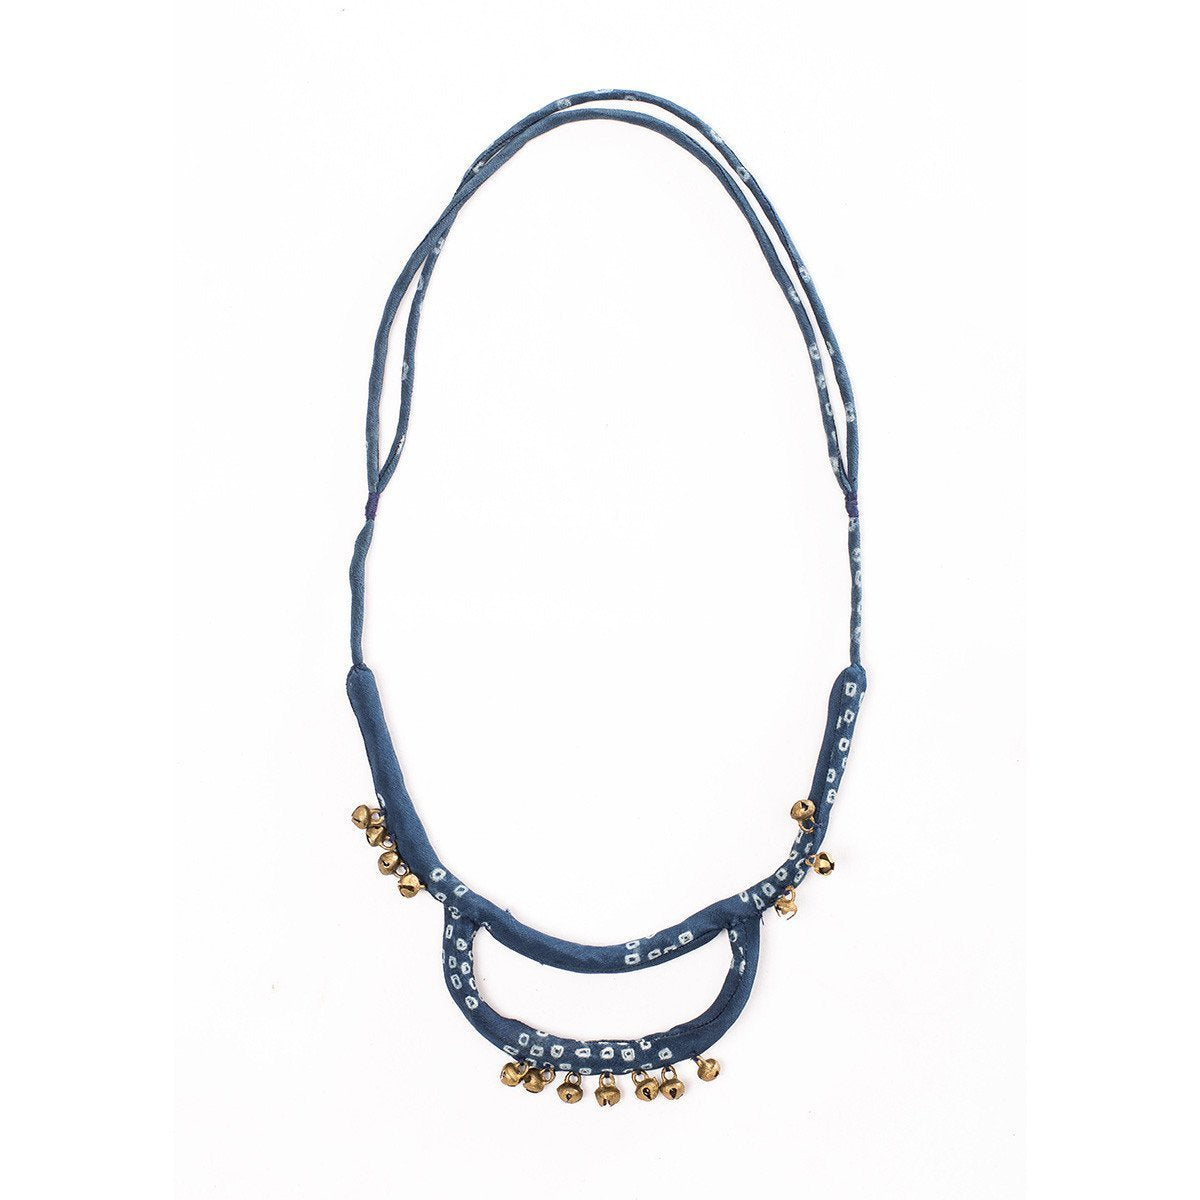 Indigo silk fabric necklace with numerous engraved gold bell charms